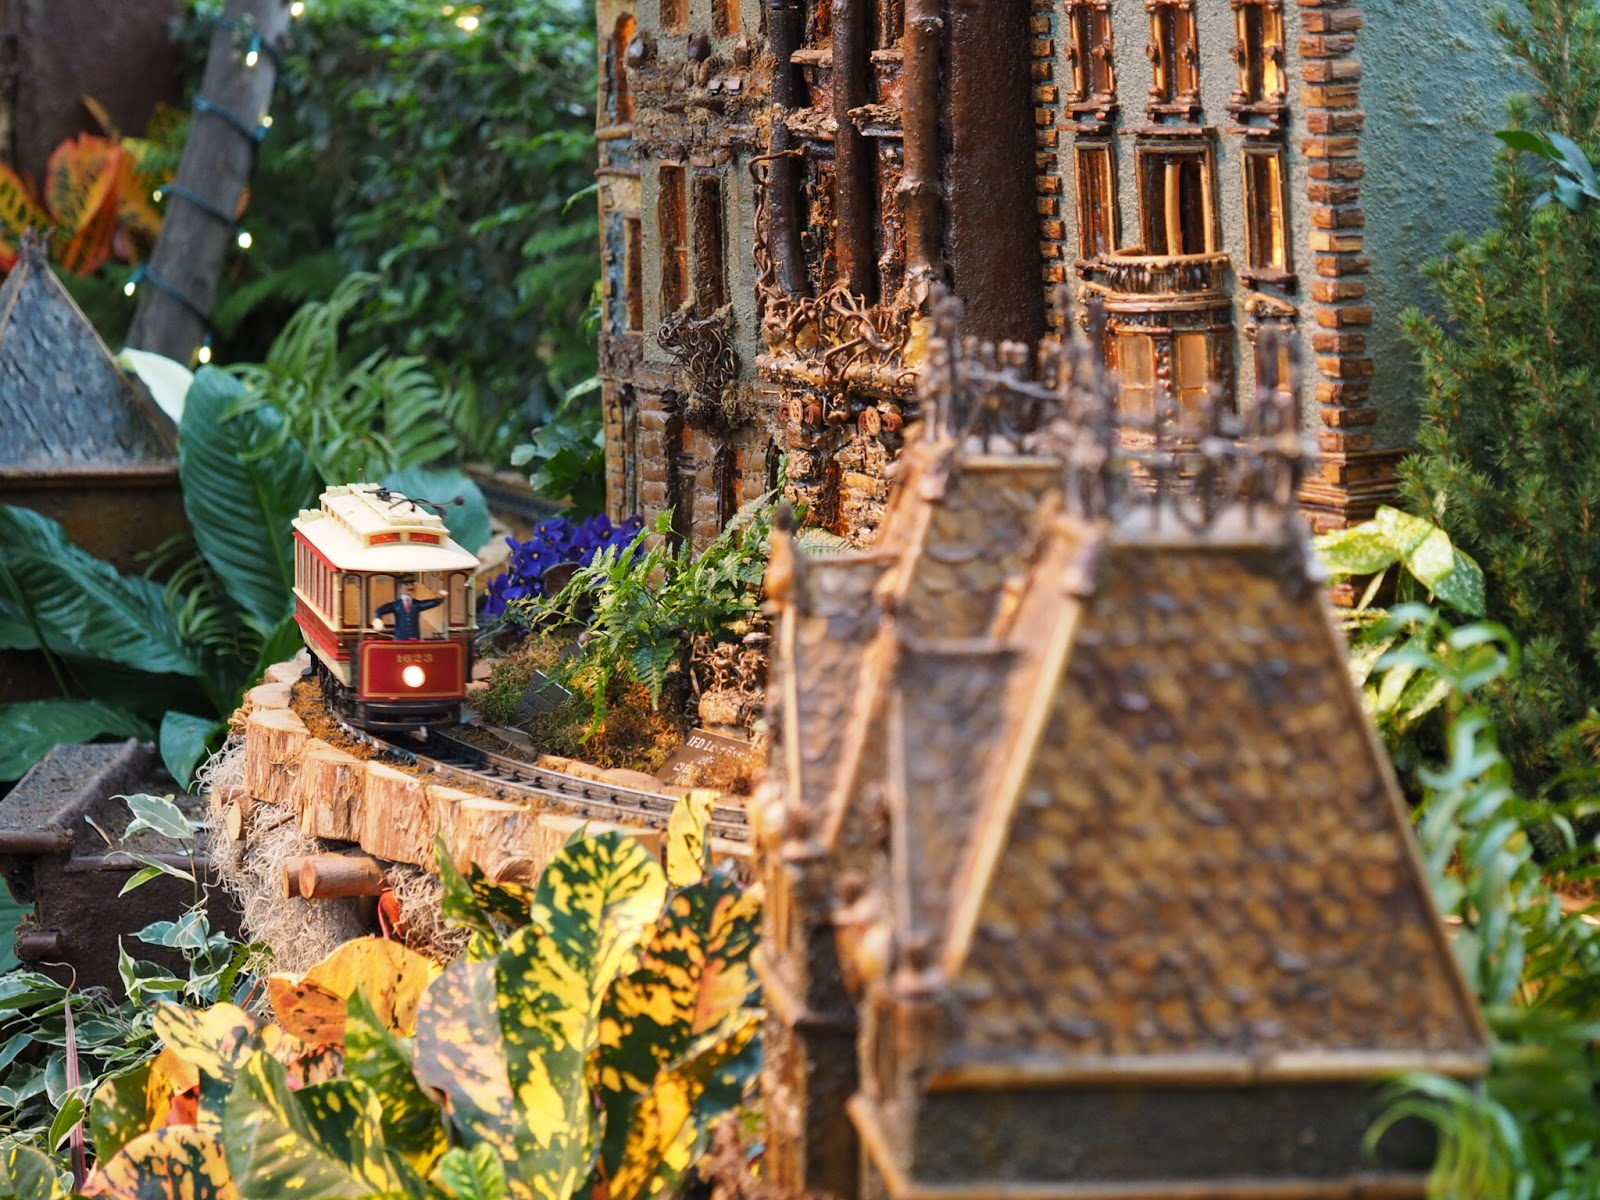 Superbe Over The Holiday Period, The Haupt Conservatory Is Transformed Into A  Whimsical Wonderland With G Scale Model Trains Coursing Through A  Lilliputian New York ...